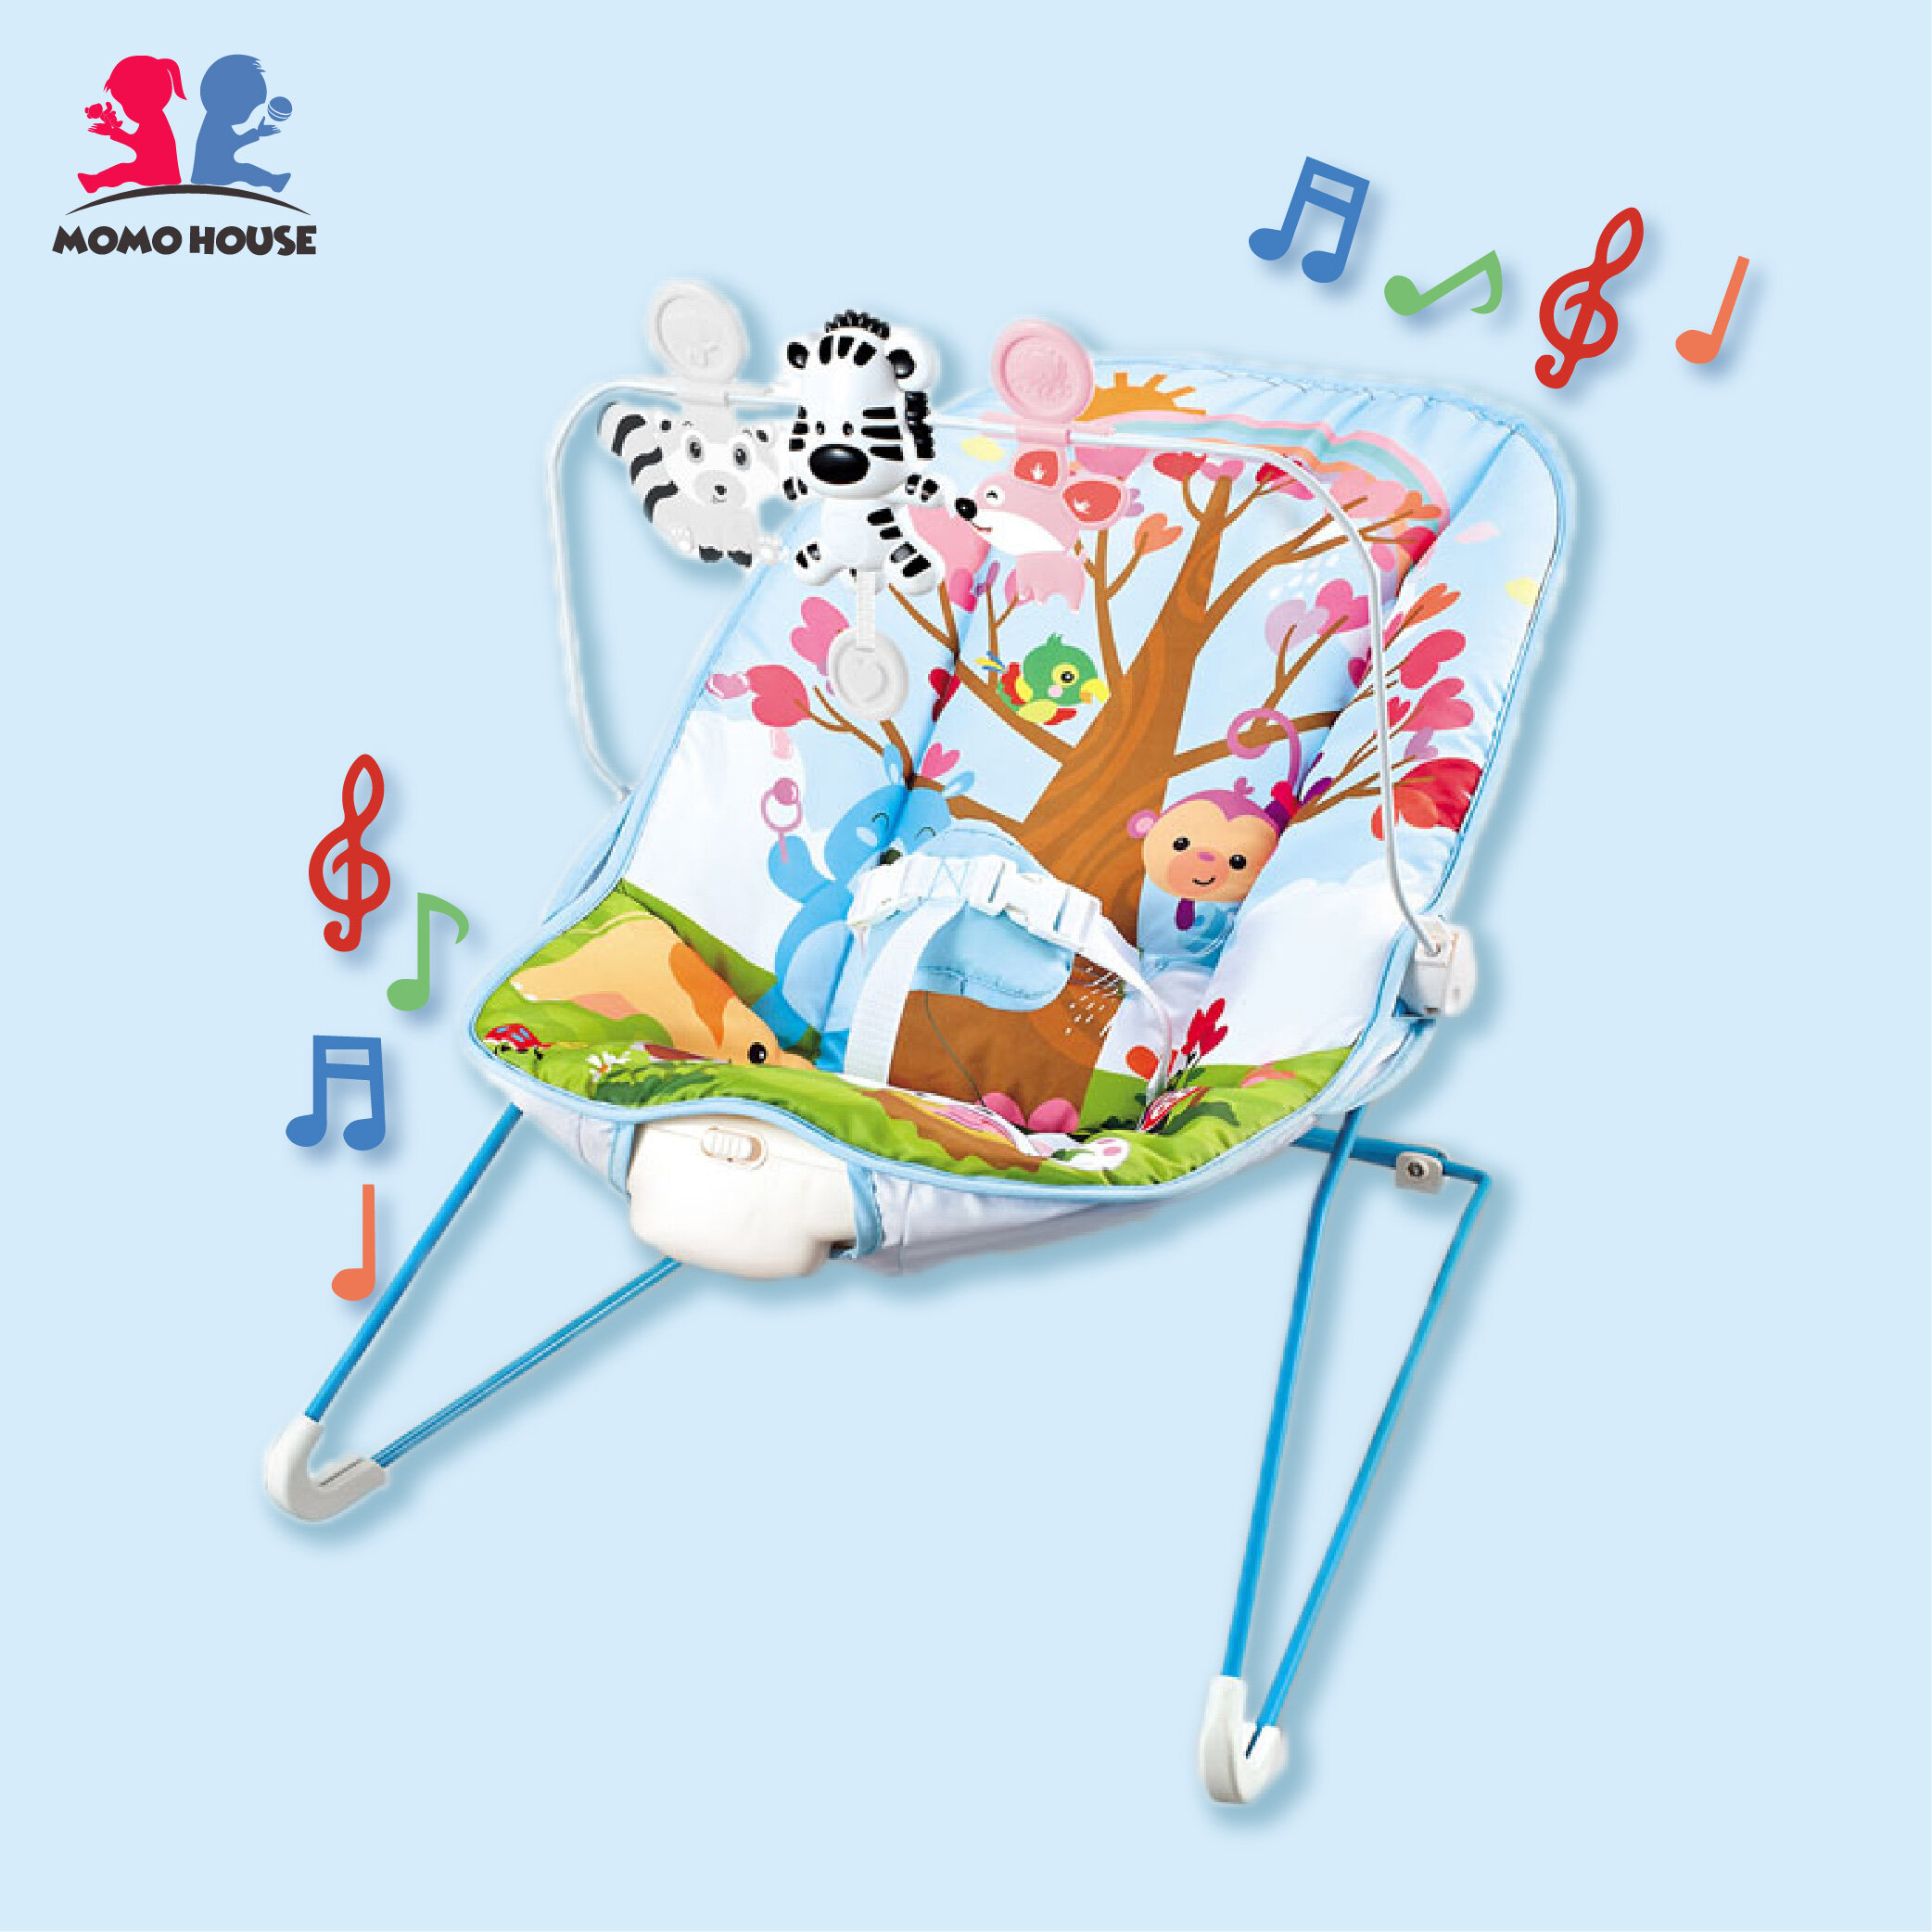 MOMO HOUSE Baby Rocker Bouncer Chair With Toys & Music